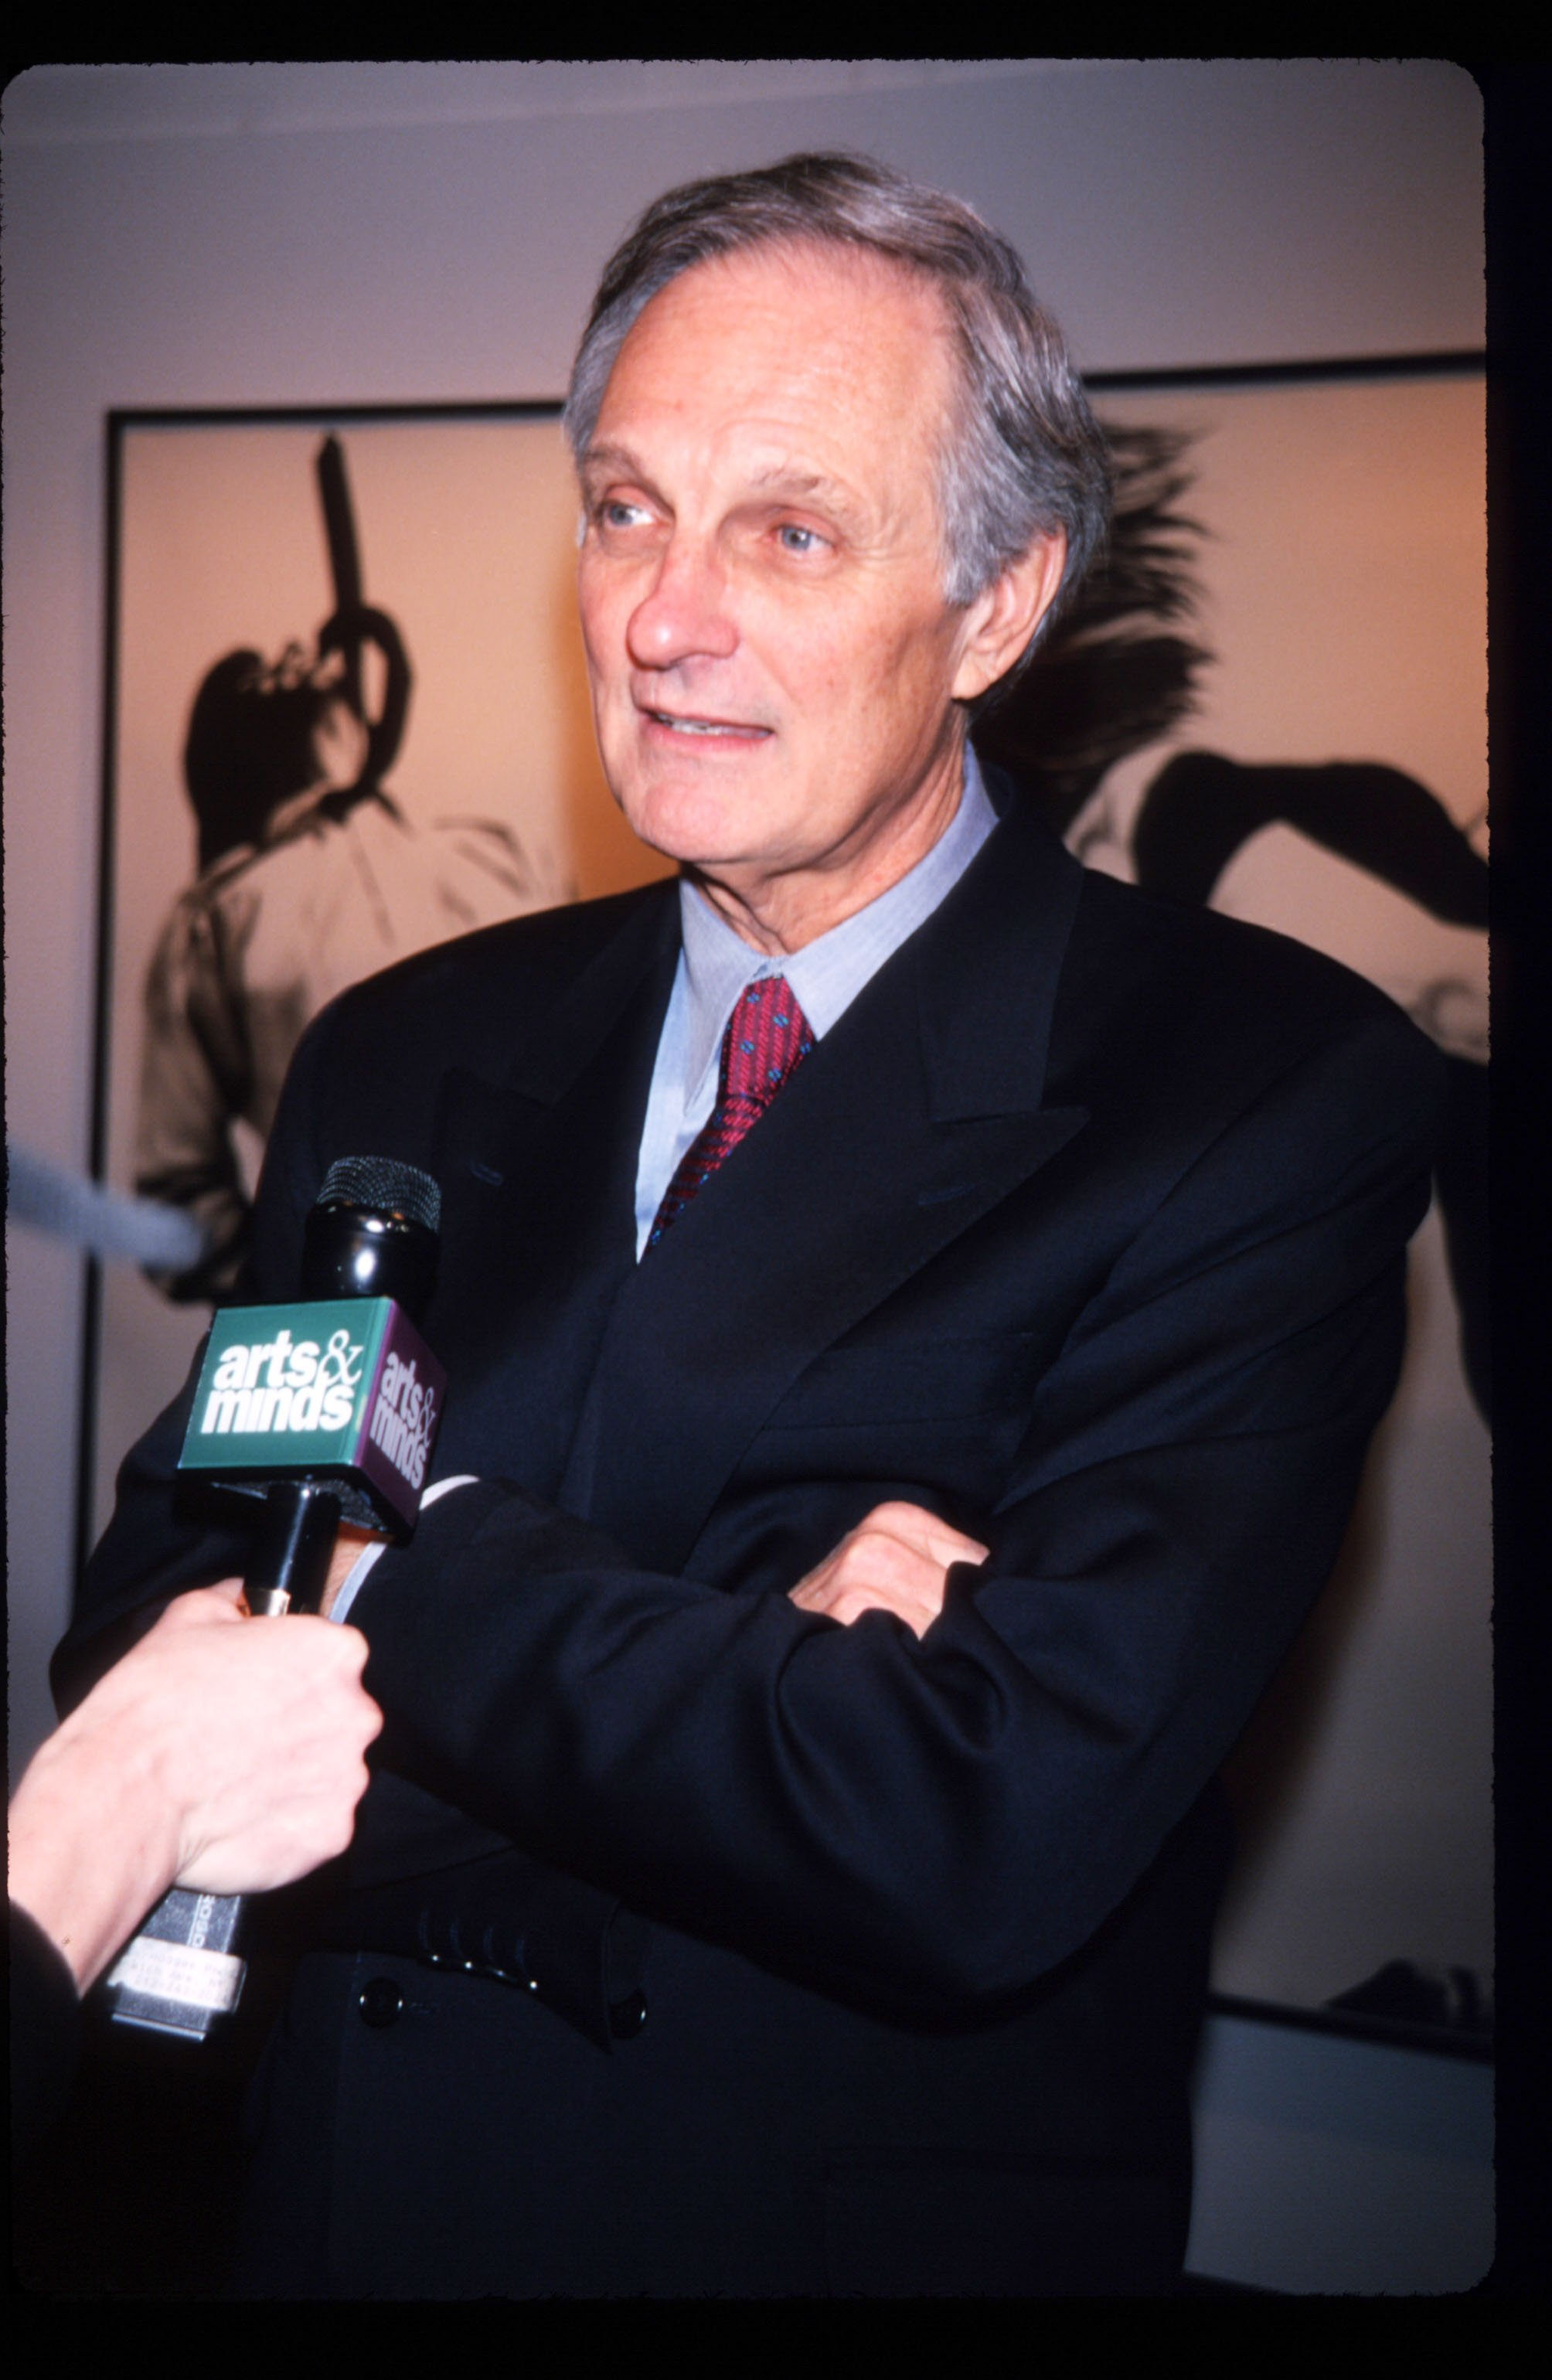 "Alan Alda attends the premiere of ""Art"" in New York City on March 1, 1998 